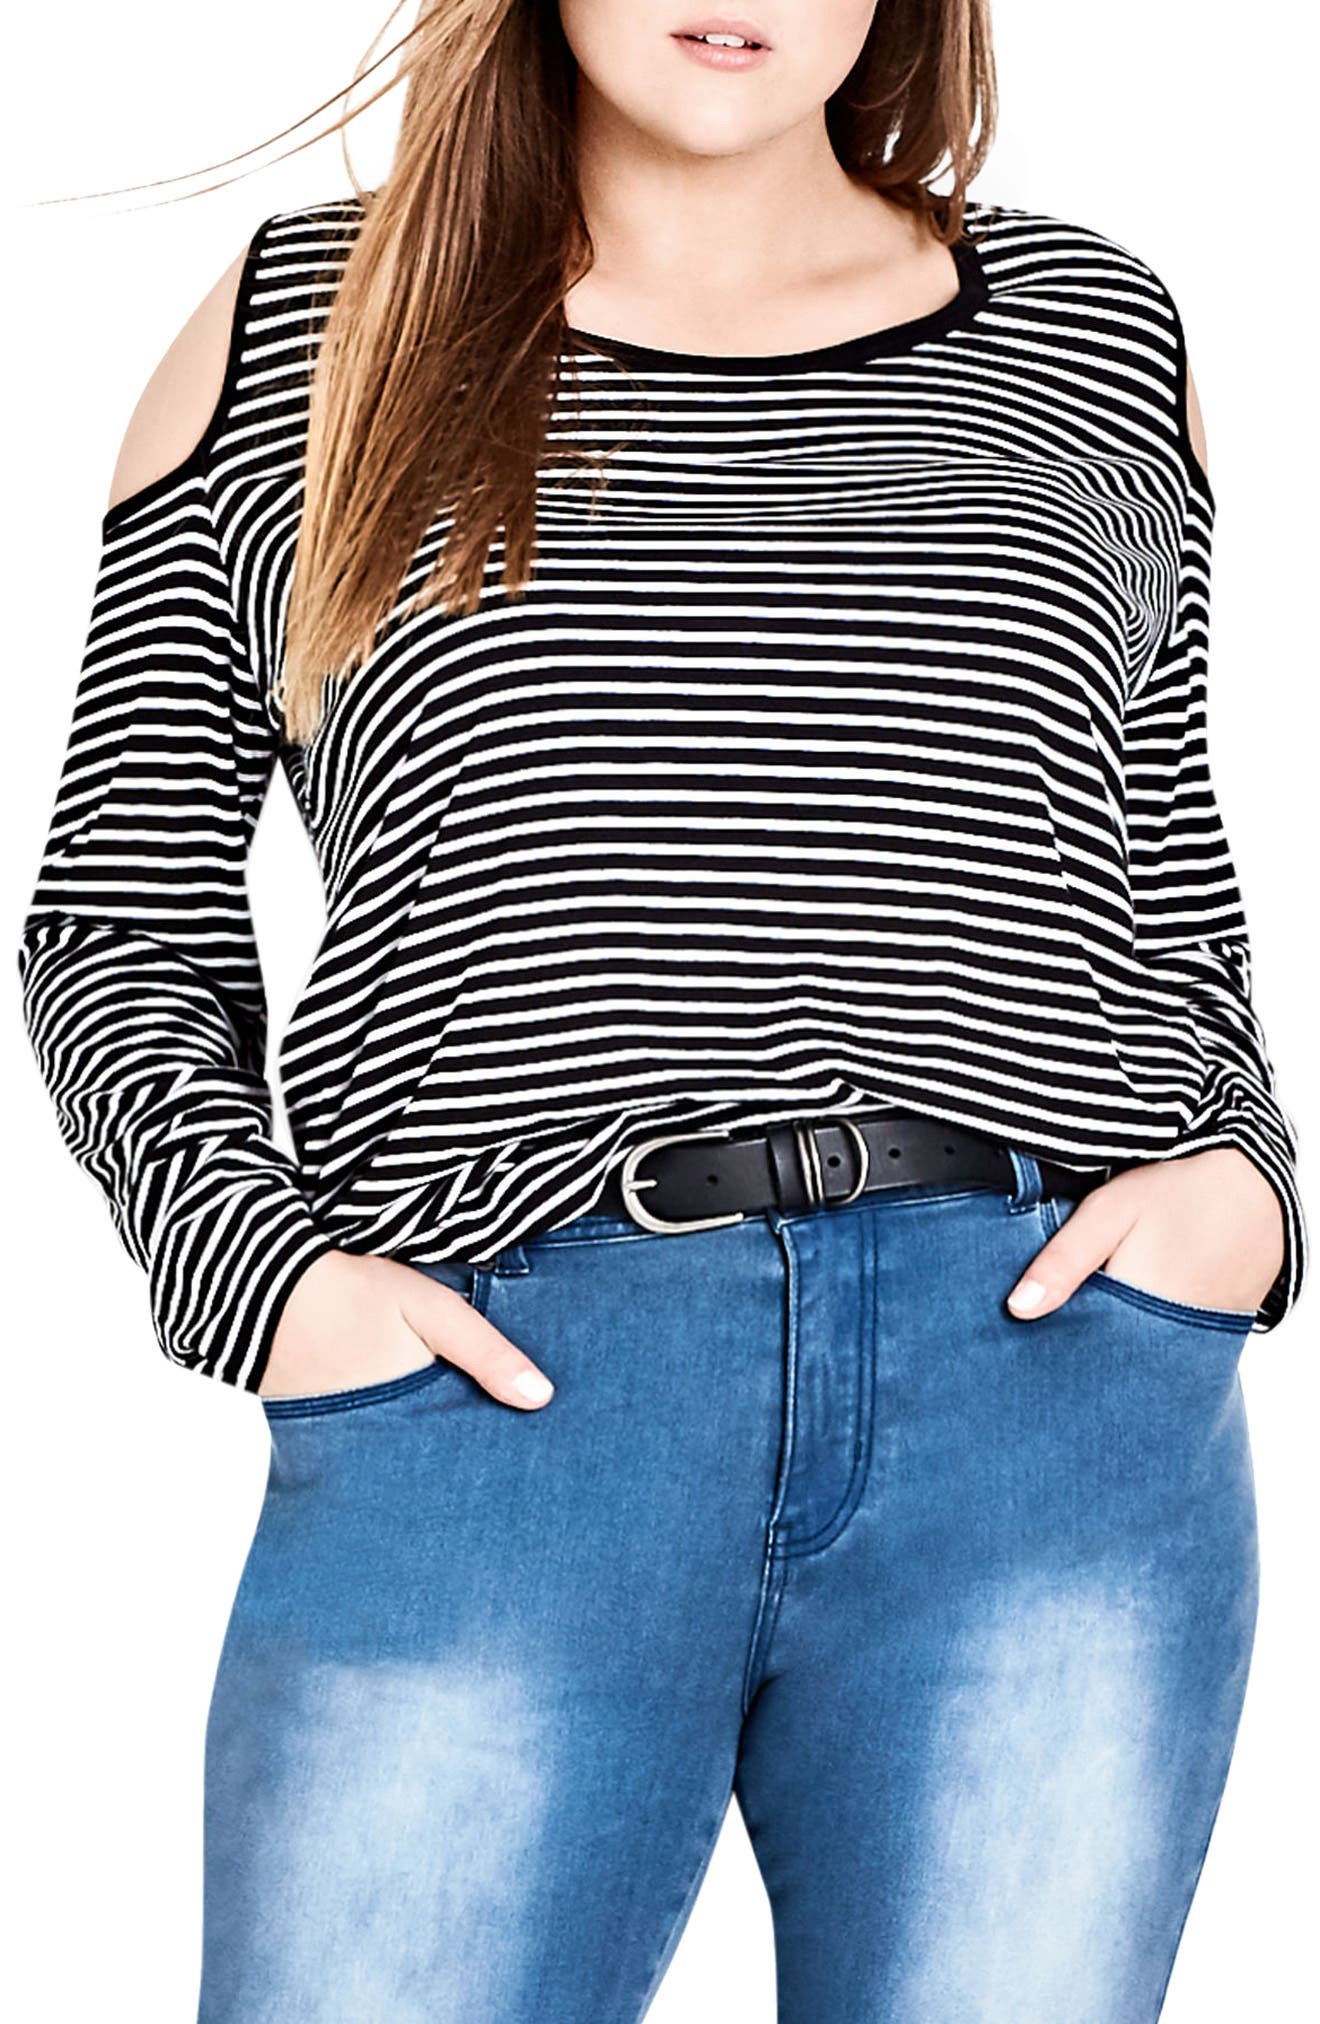 Alternate Image 1 Selected - City Chic Stripe Cold Shoulder Jersey Top (Plus Size)